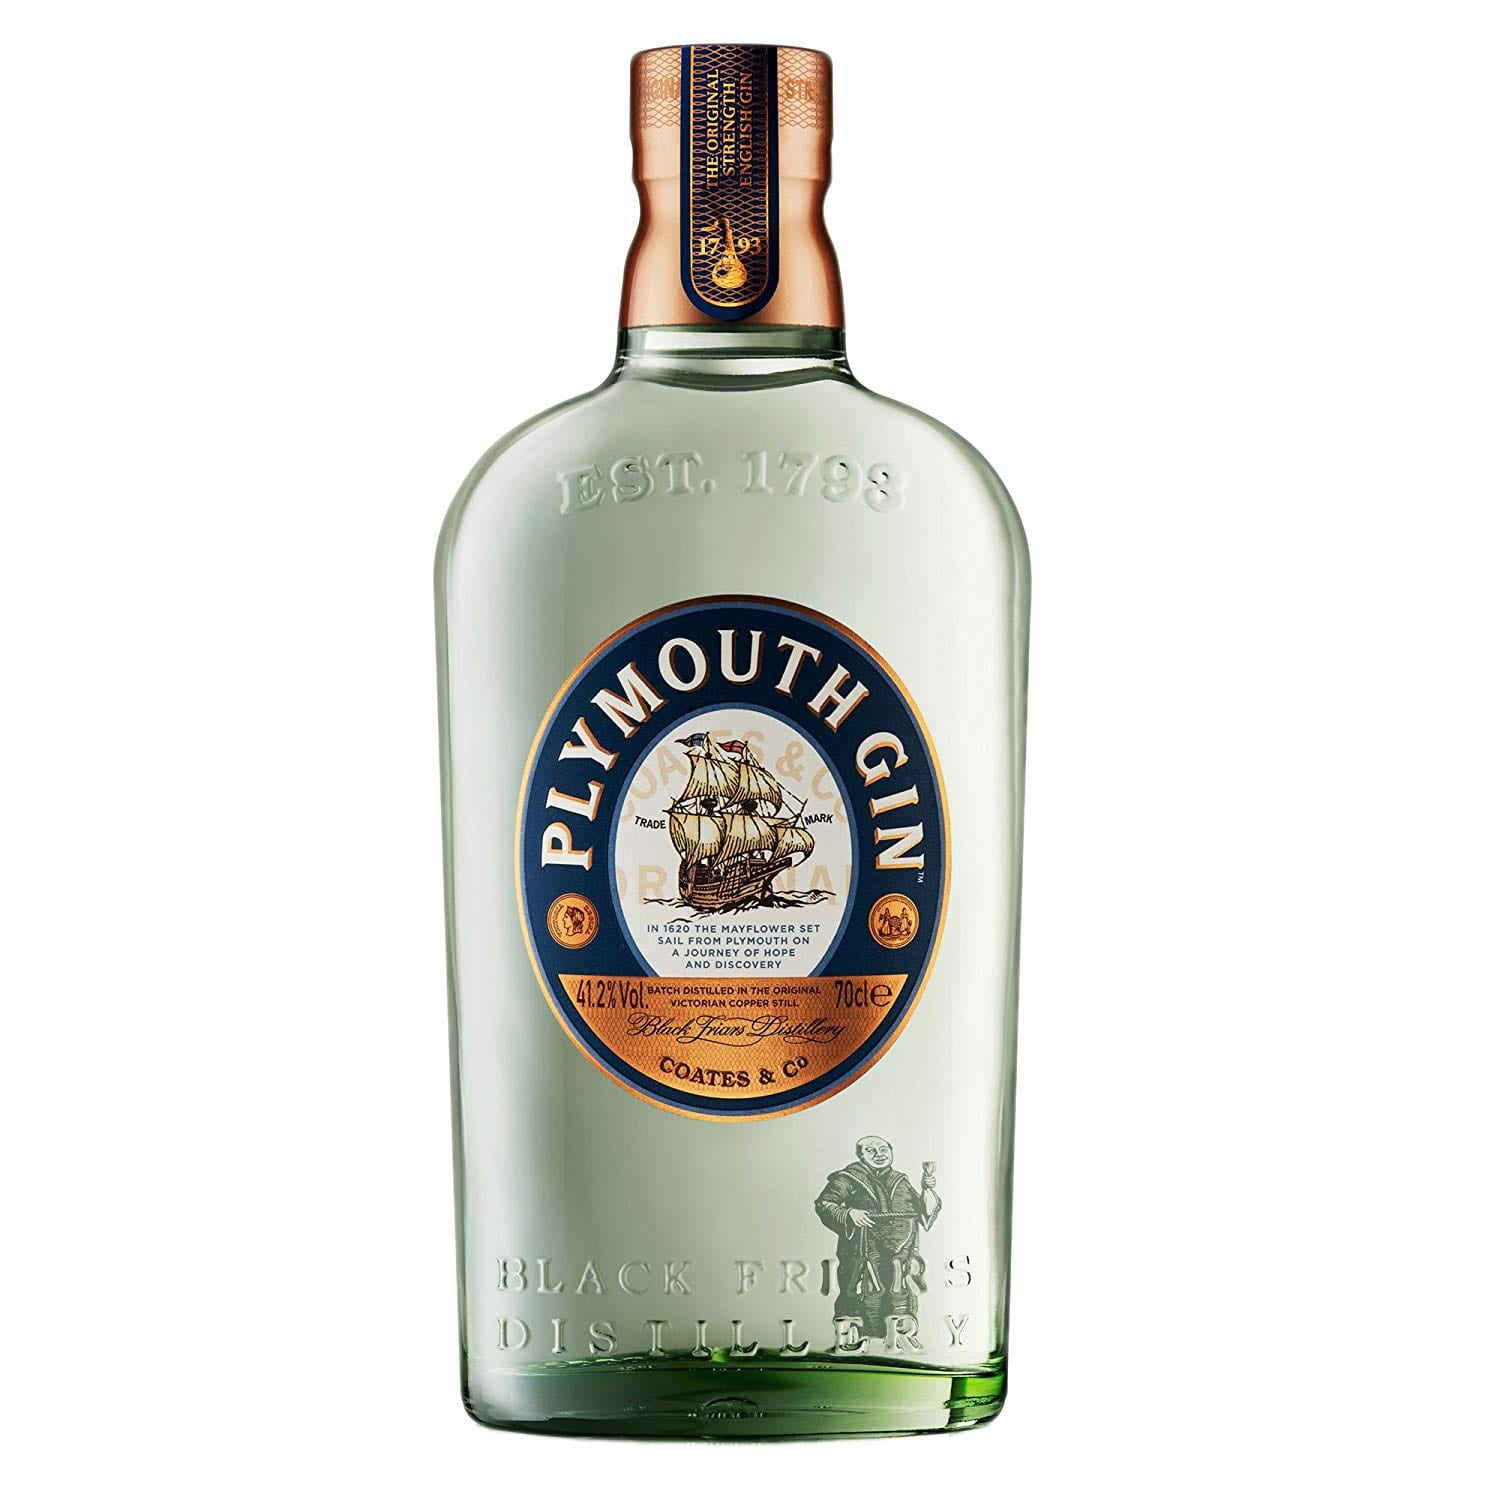 Plymouth Original Dry Gin